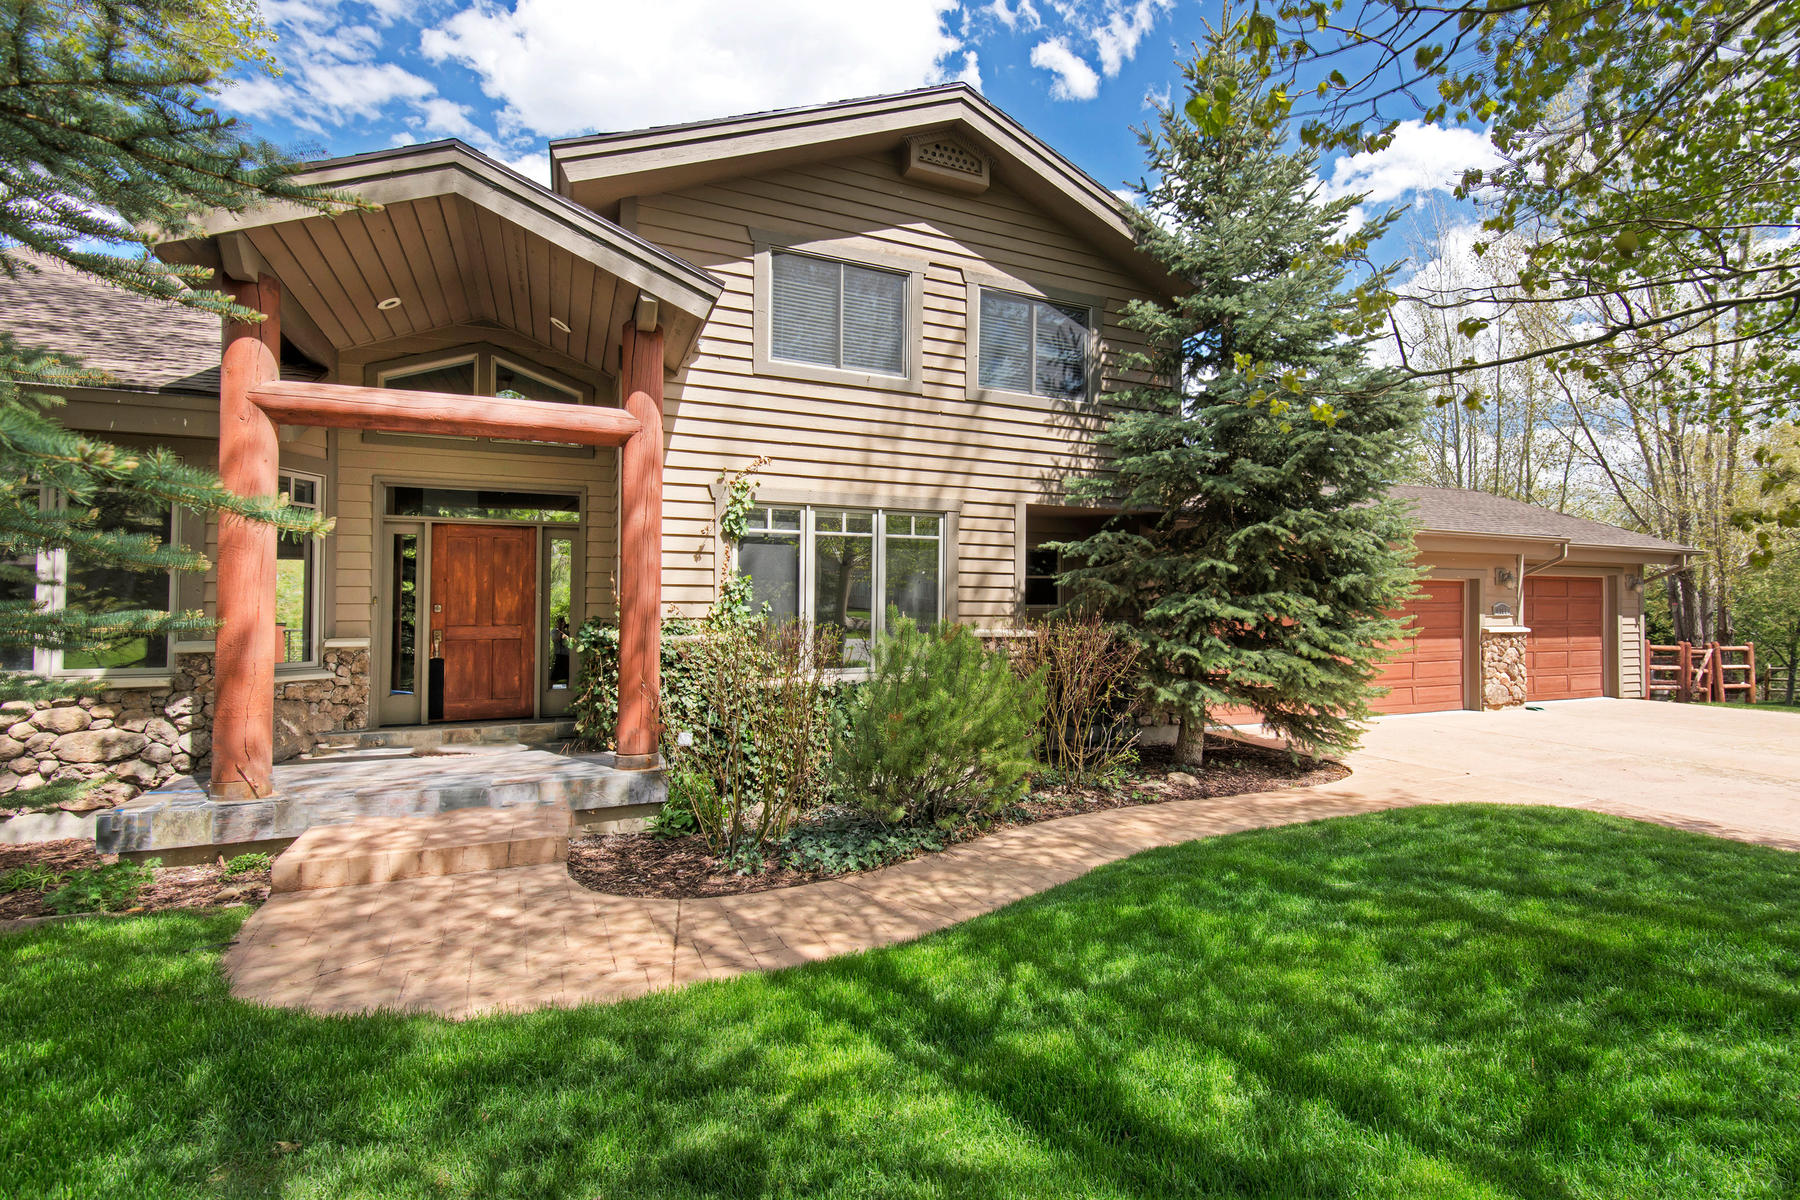 Single Family Home for Sale at Well-loved Ranch Place Home Overlooking Swaner Nature Preserve 4780 Winchester Ct Park City, Utah 84098 United States